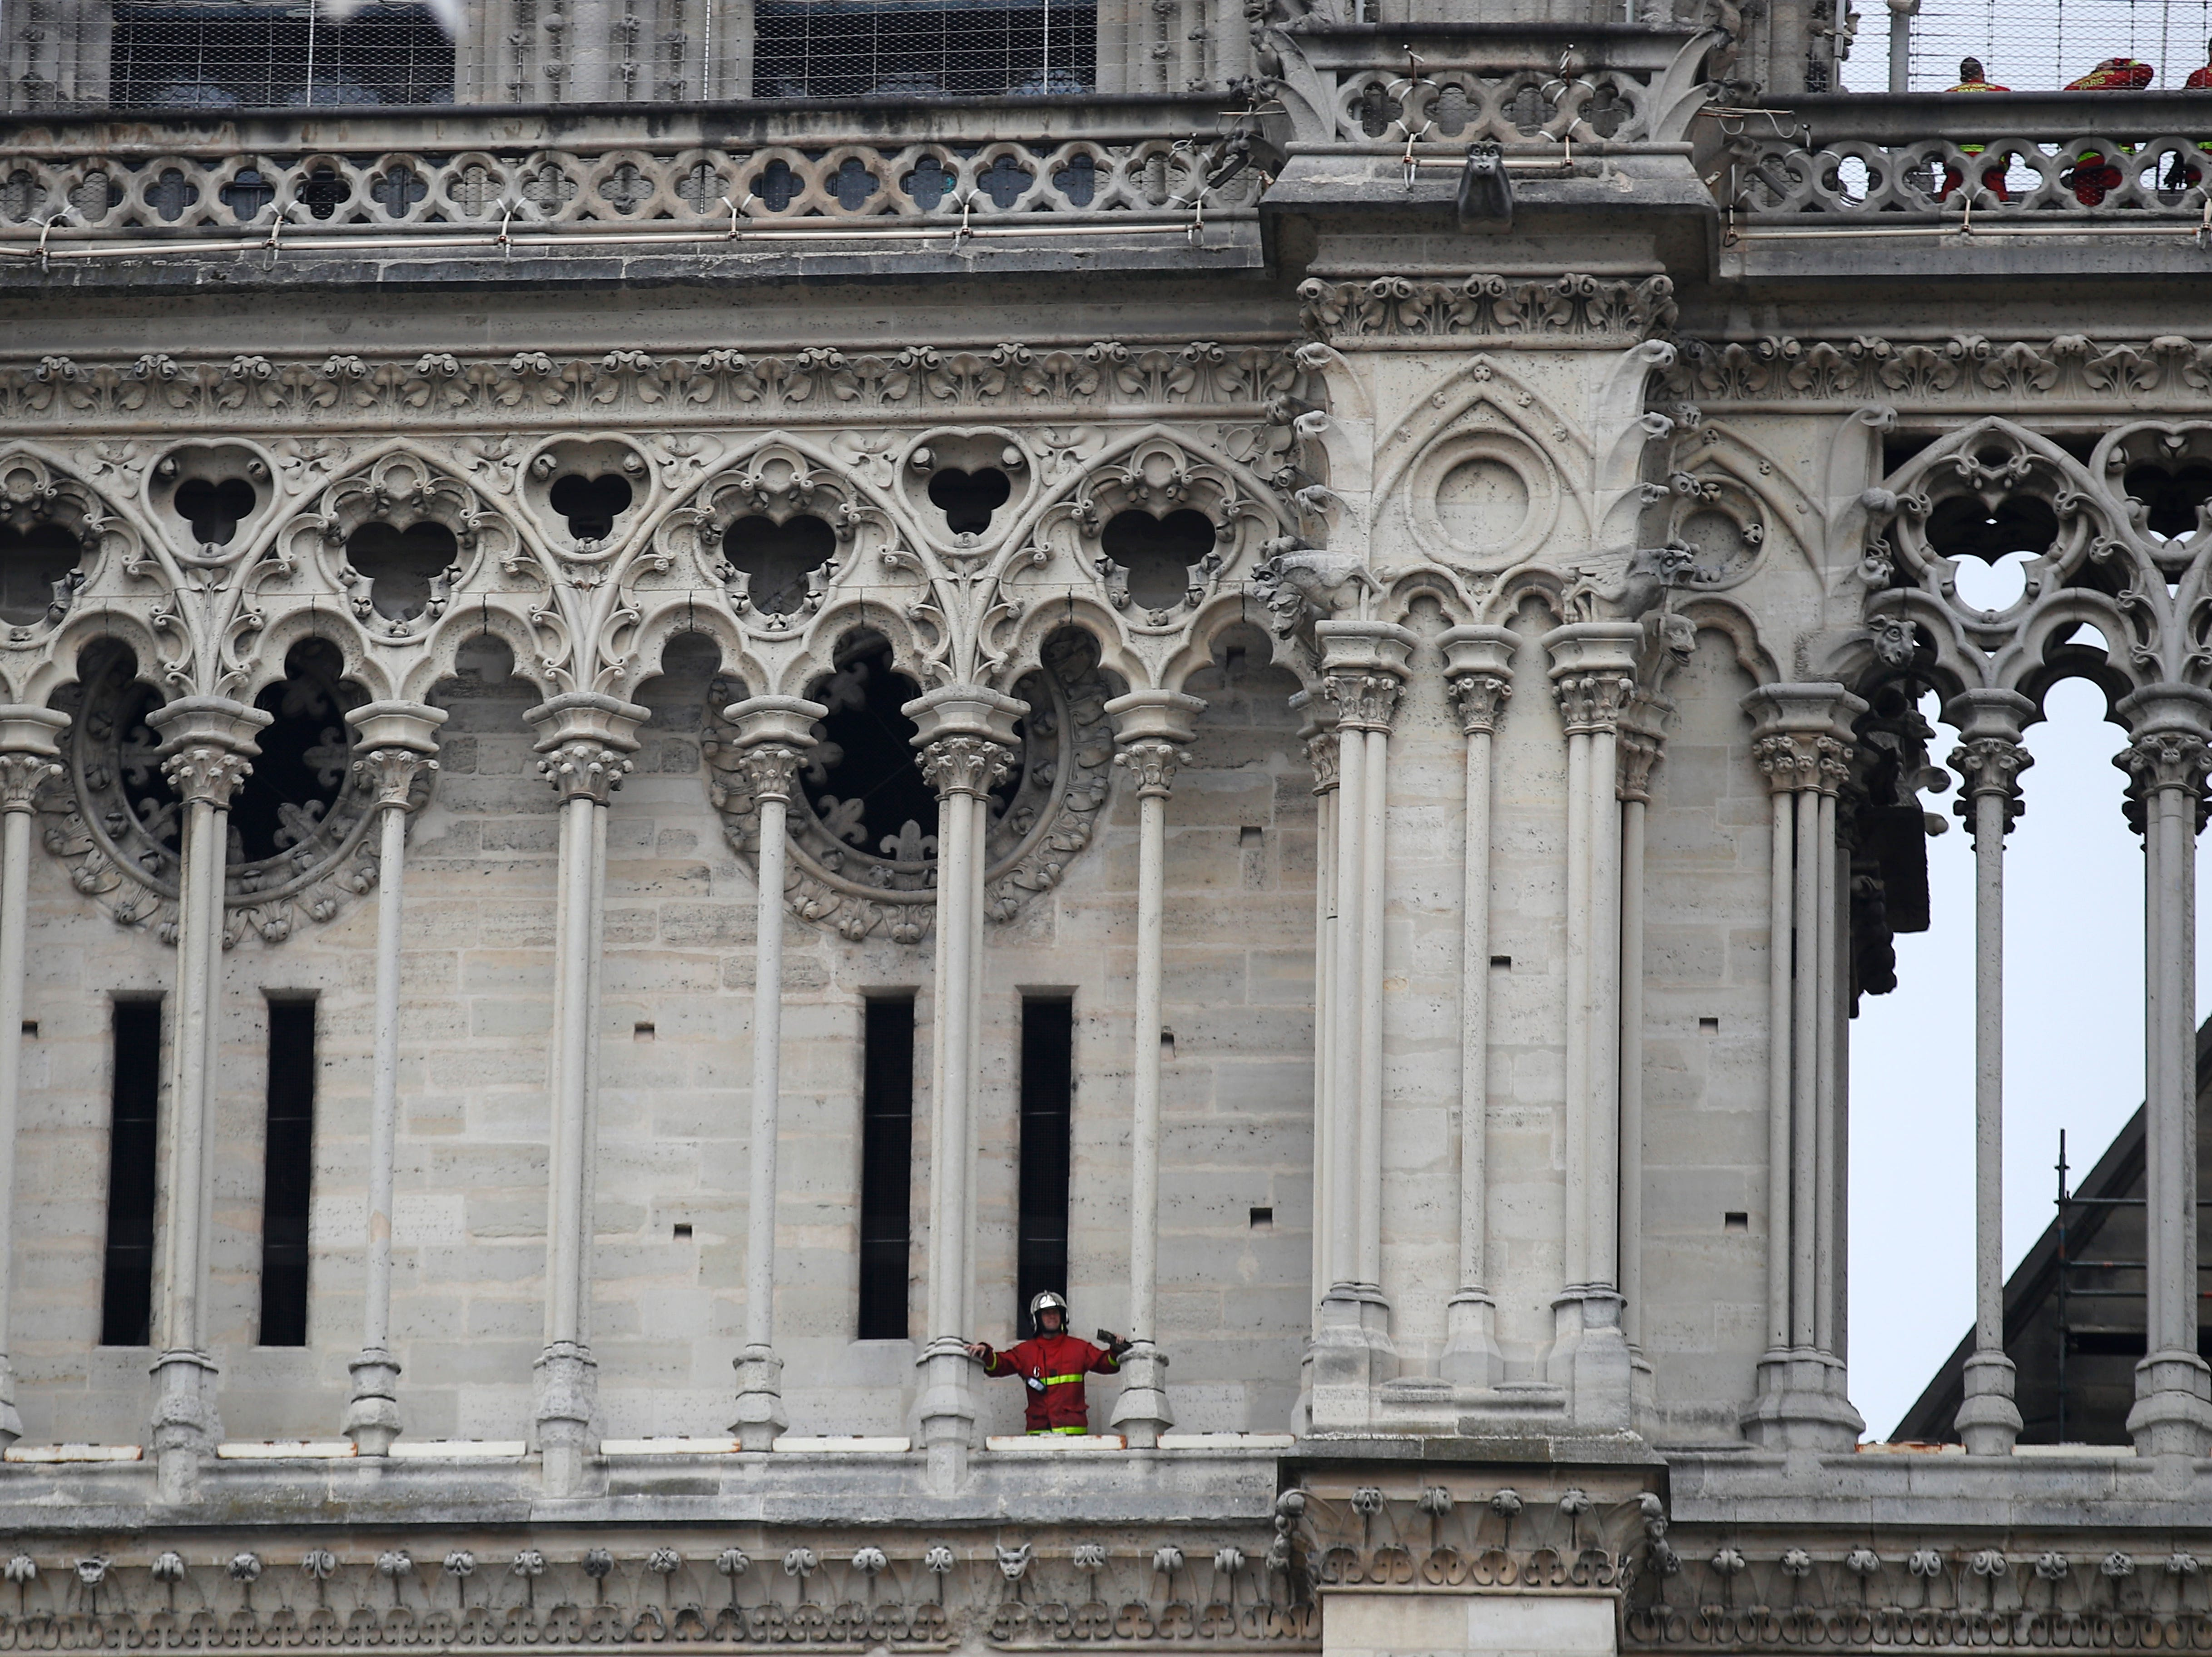 A firefighter is pictured at Notre Dame cathedral Tuesday April 16, 2019 in Paris. Firefighters declared success Tuesday in a more than 12-hour battle to extinguish an inferno engulfing Paris' iconic Notre Dame cathedral that claimed its spire and roof, but spared its bell towers. (AP Photo/Francois Mori)